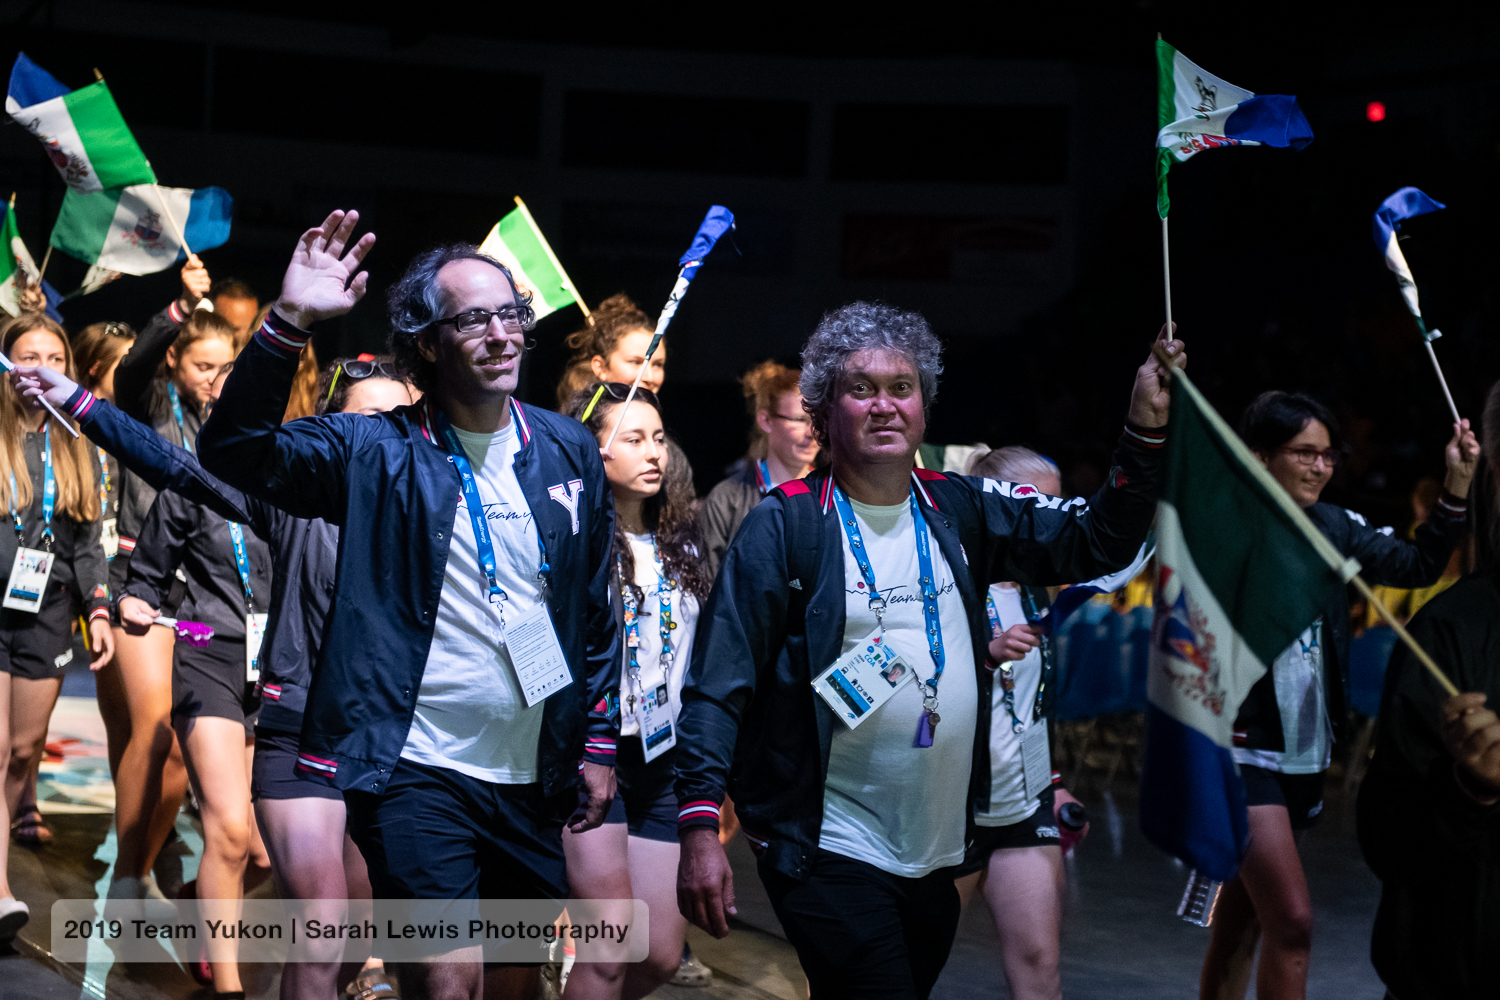 JF and Dean the mechanic (with Aïsha behind him and Mathilde at the far right) entering the arena with the Yukon delegation during the opening ceremonies.